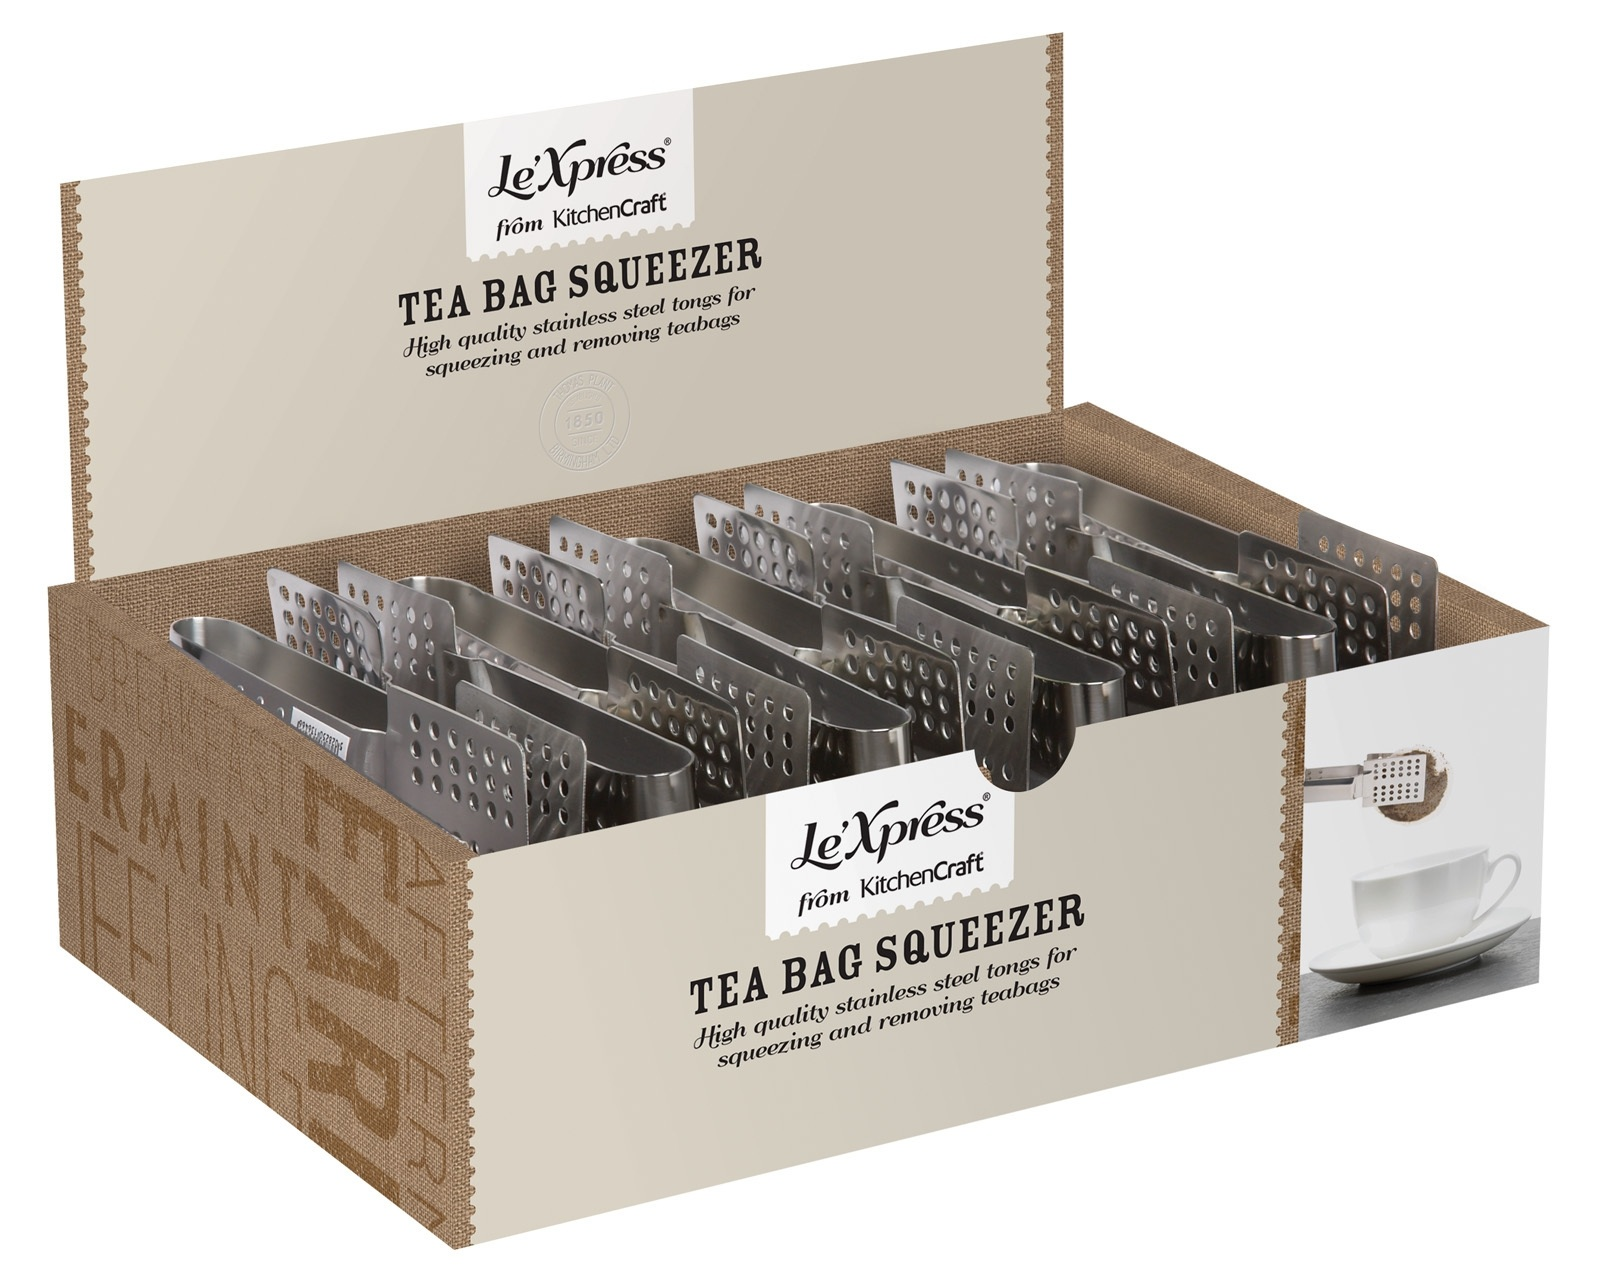 Le xpress wooden tea chest hot drinks accessories for Kitchen xpress overseas ltd contact number